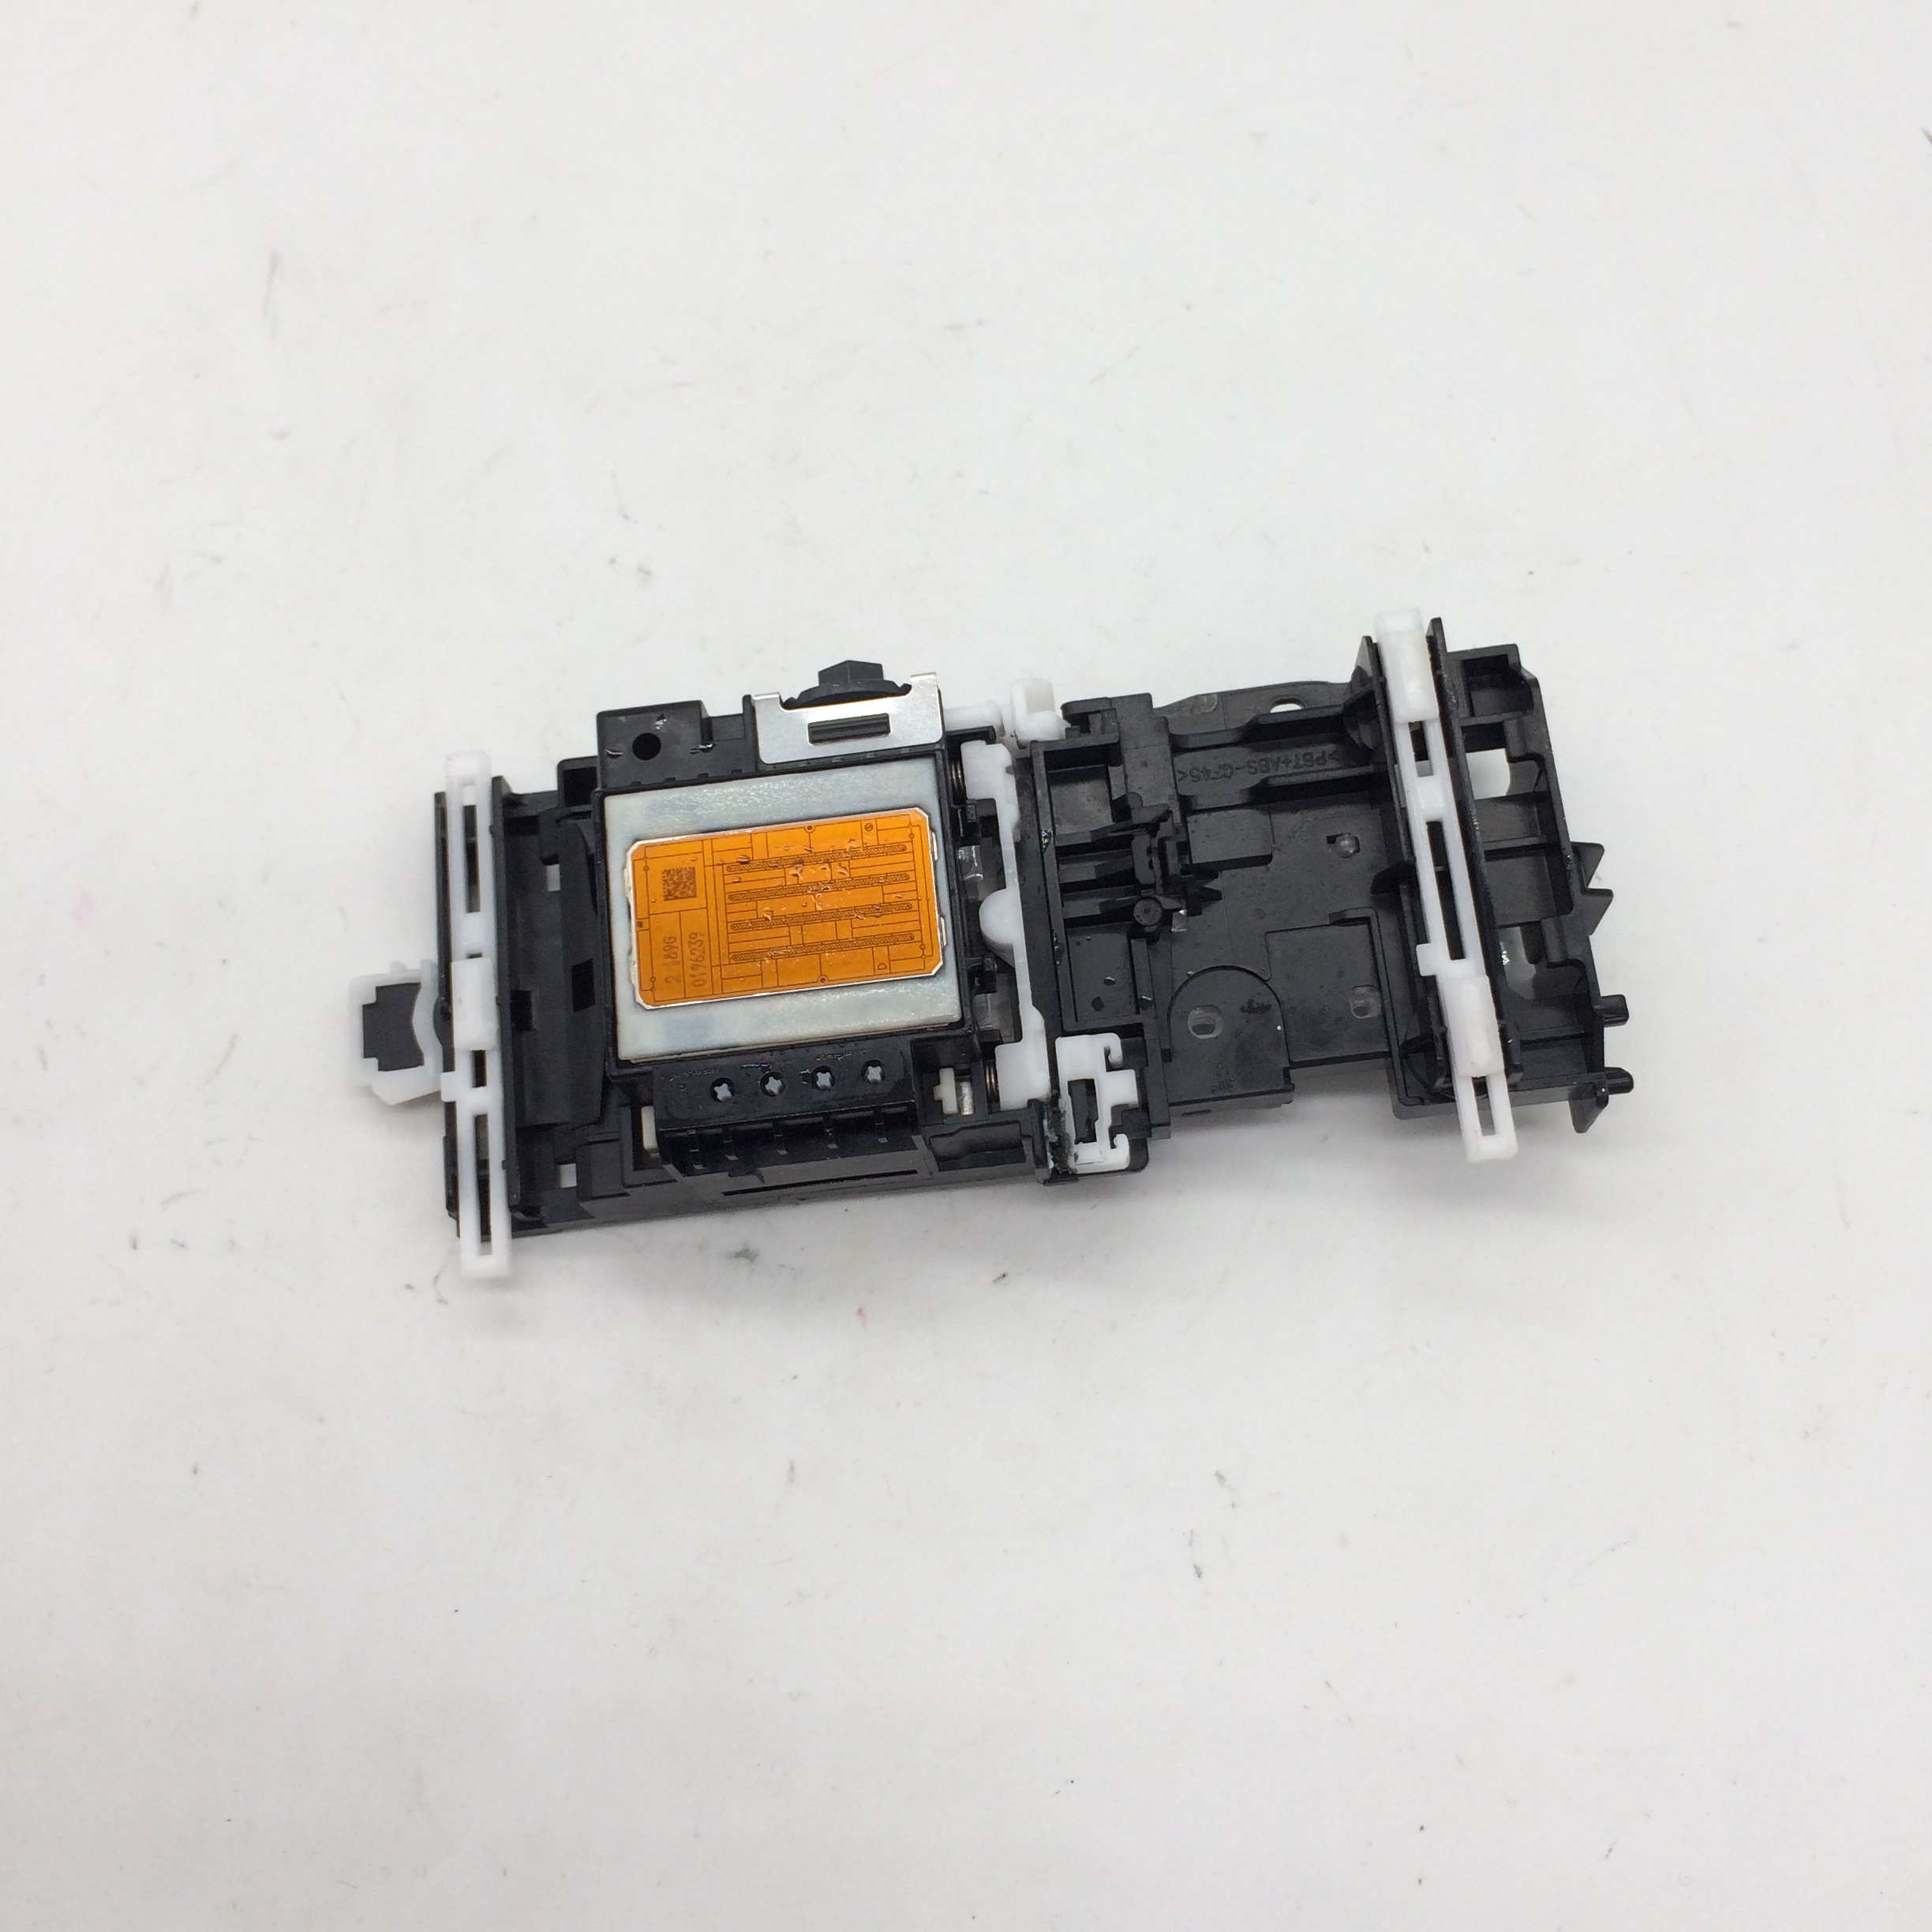 Printhead 990 A4 Print head For Brother MFC-255CW J125 J140 J220 J315 J515 J265 255 495 795 dcp 395c Printer Head lk3197001 990 a3 print head for brother mfc6490 mfc6490cw mfc5890